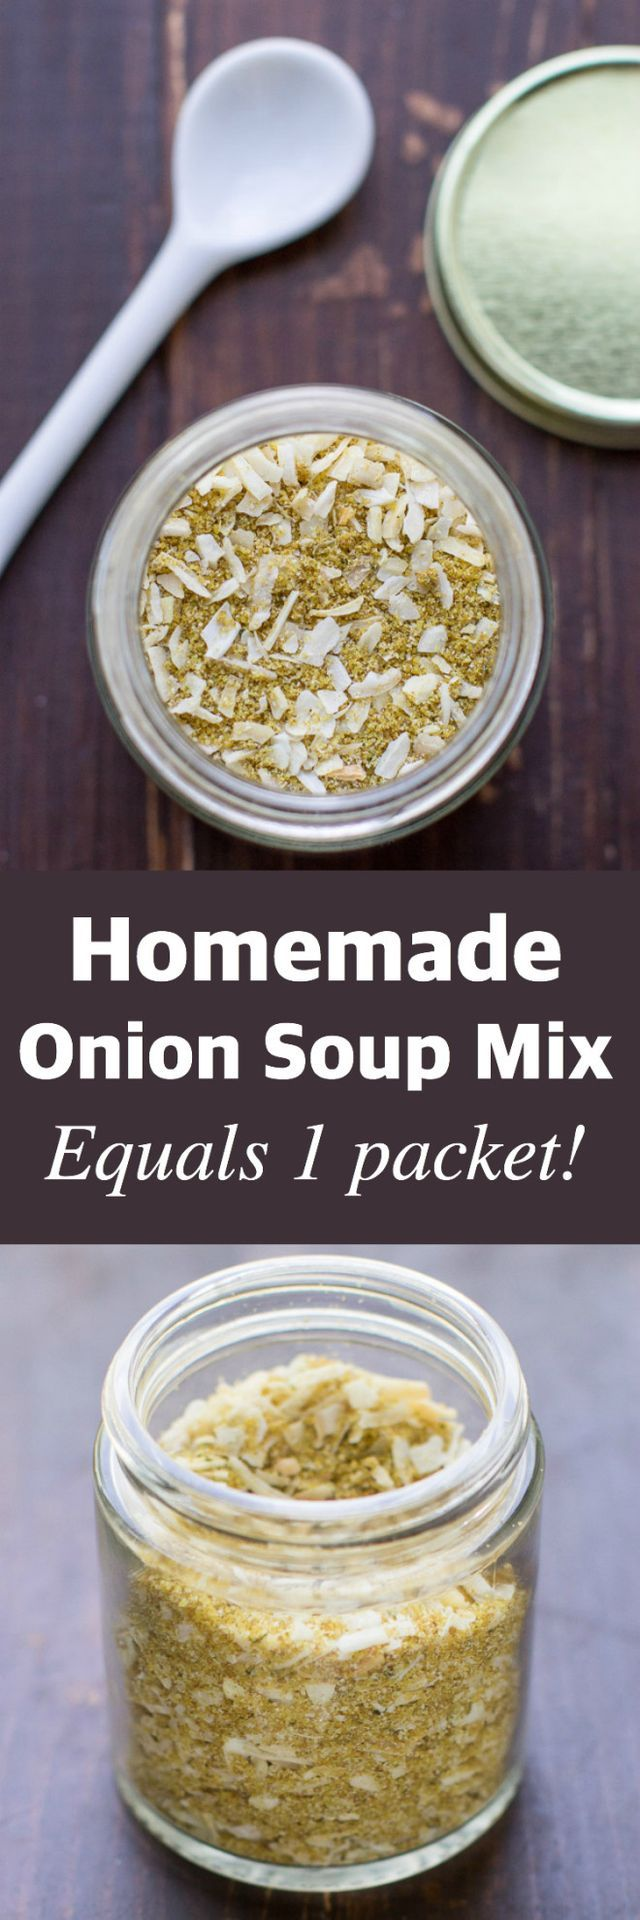 Homemade Onion Soup Mix is perfect for soups, dips, pot roast, and more. This easy recipe makes the equivalent of one packet, just what you need!   Good ol' Onion Soup Mix. It was a frequent guest at